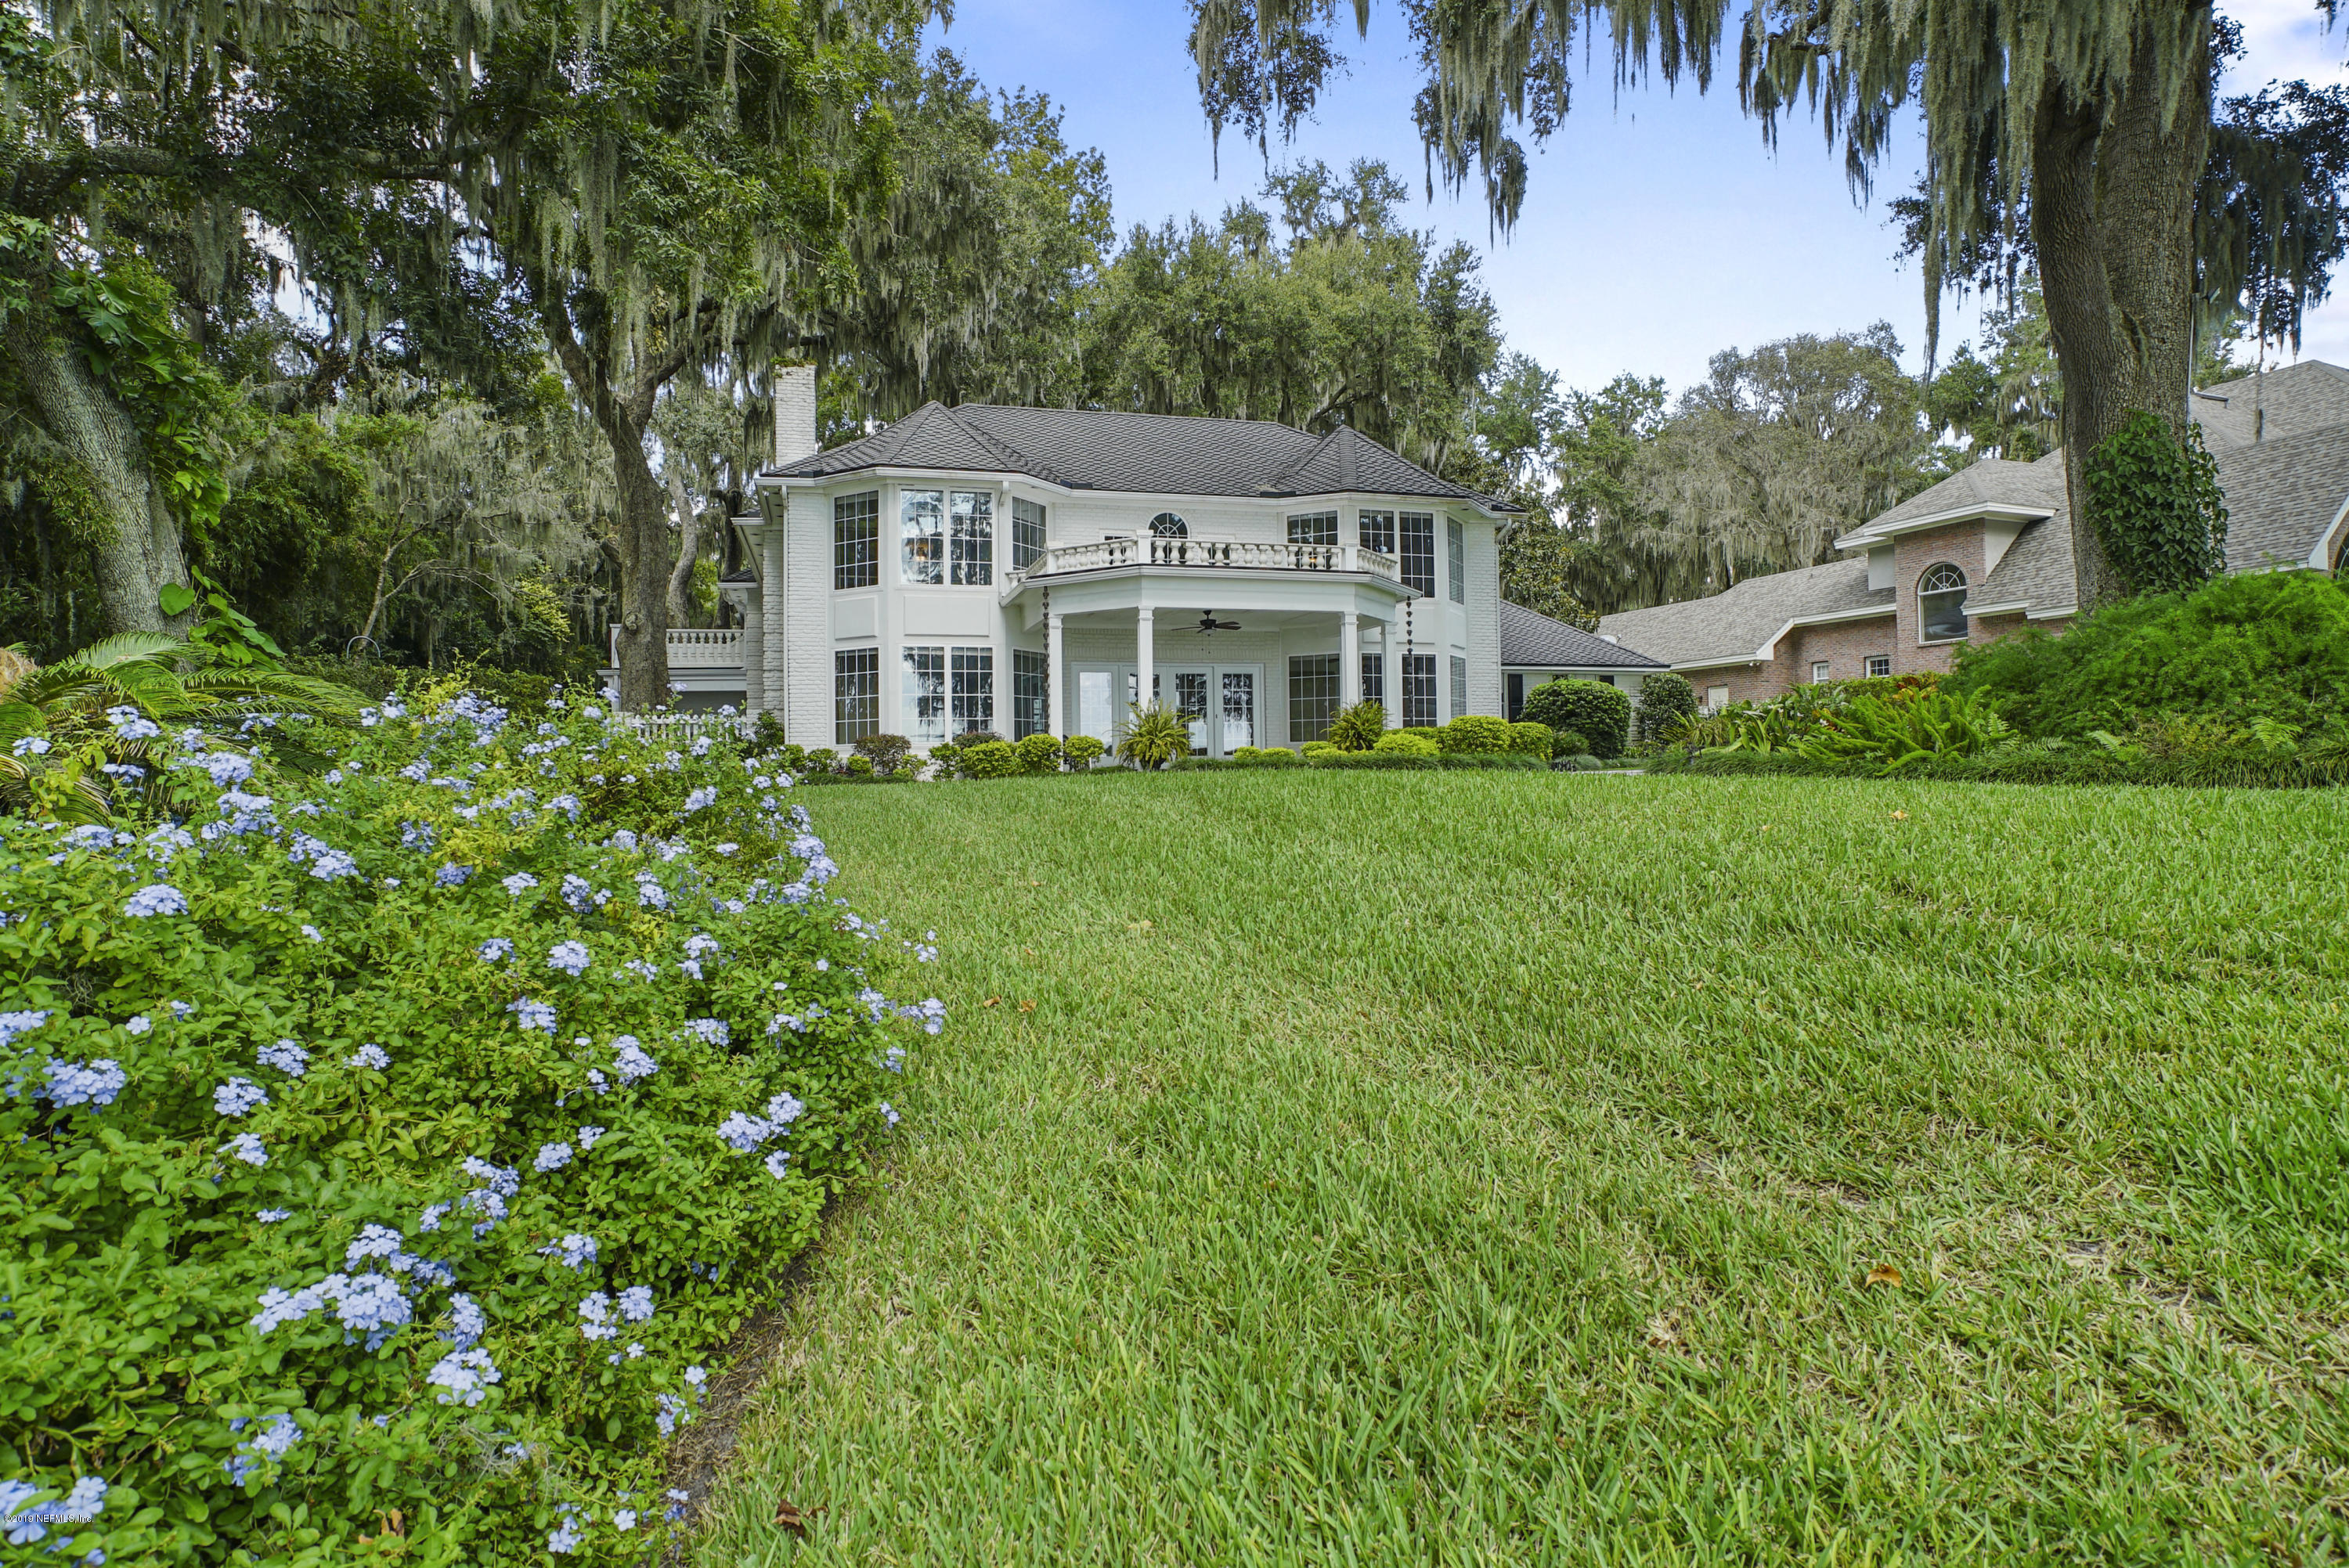 13766 MANDARIN, JACKSONVILLE, FLORIDA 32223, 5 Bedrooms Bedrooms, ,4 BathroomsBathrooms,Residential - single family,For sale,MANDARIN,1021923